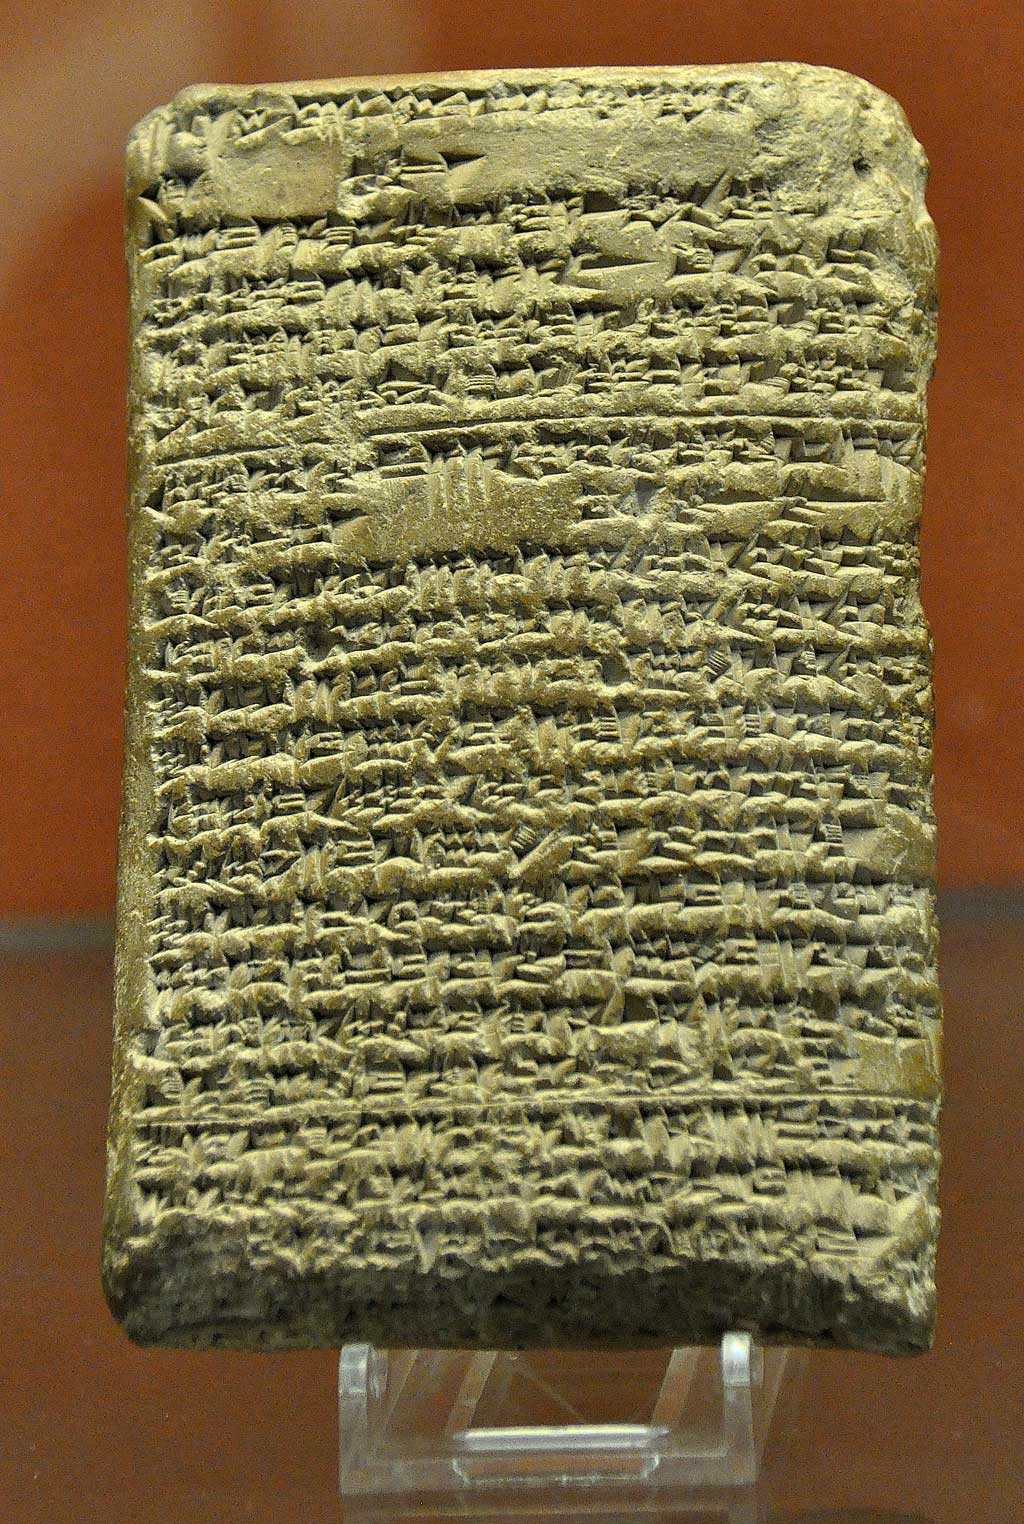 The picture is of one of the Amarna Letters. A clay tablet with cuneiform script, the tables dictates a correspondence sent by the Kassite king to the Egyptian Pharaoh asking for more gold.